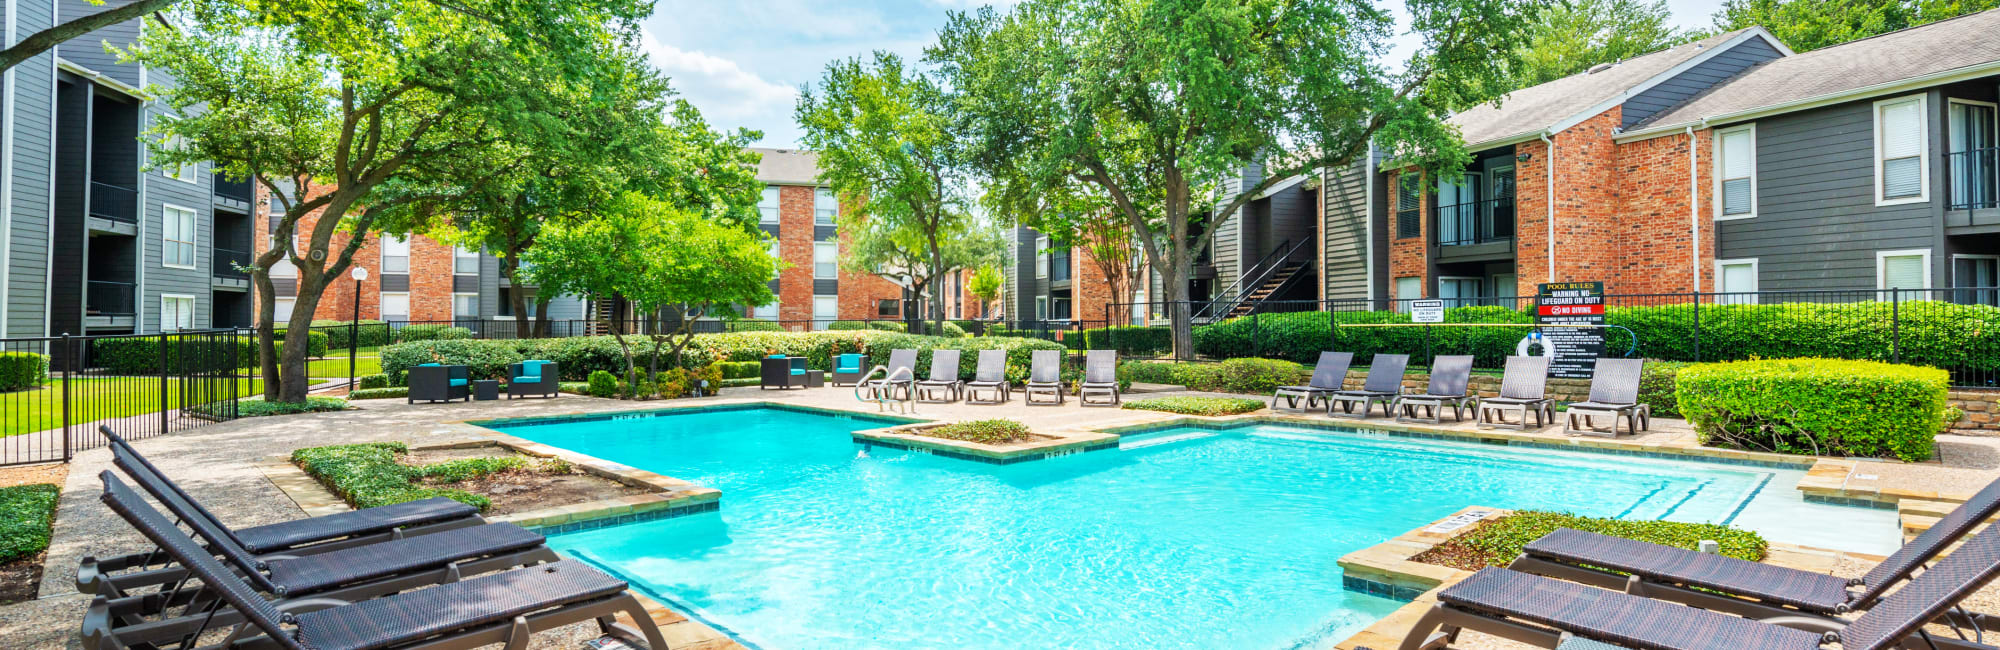 Apartments at The Madison in Dallas, Texas